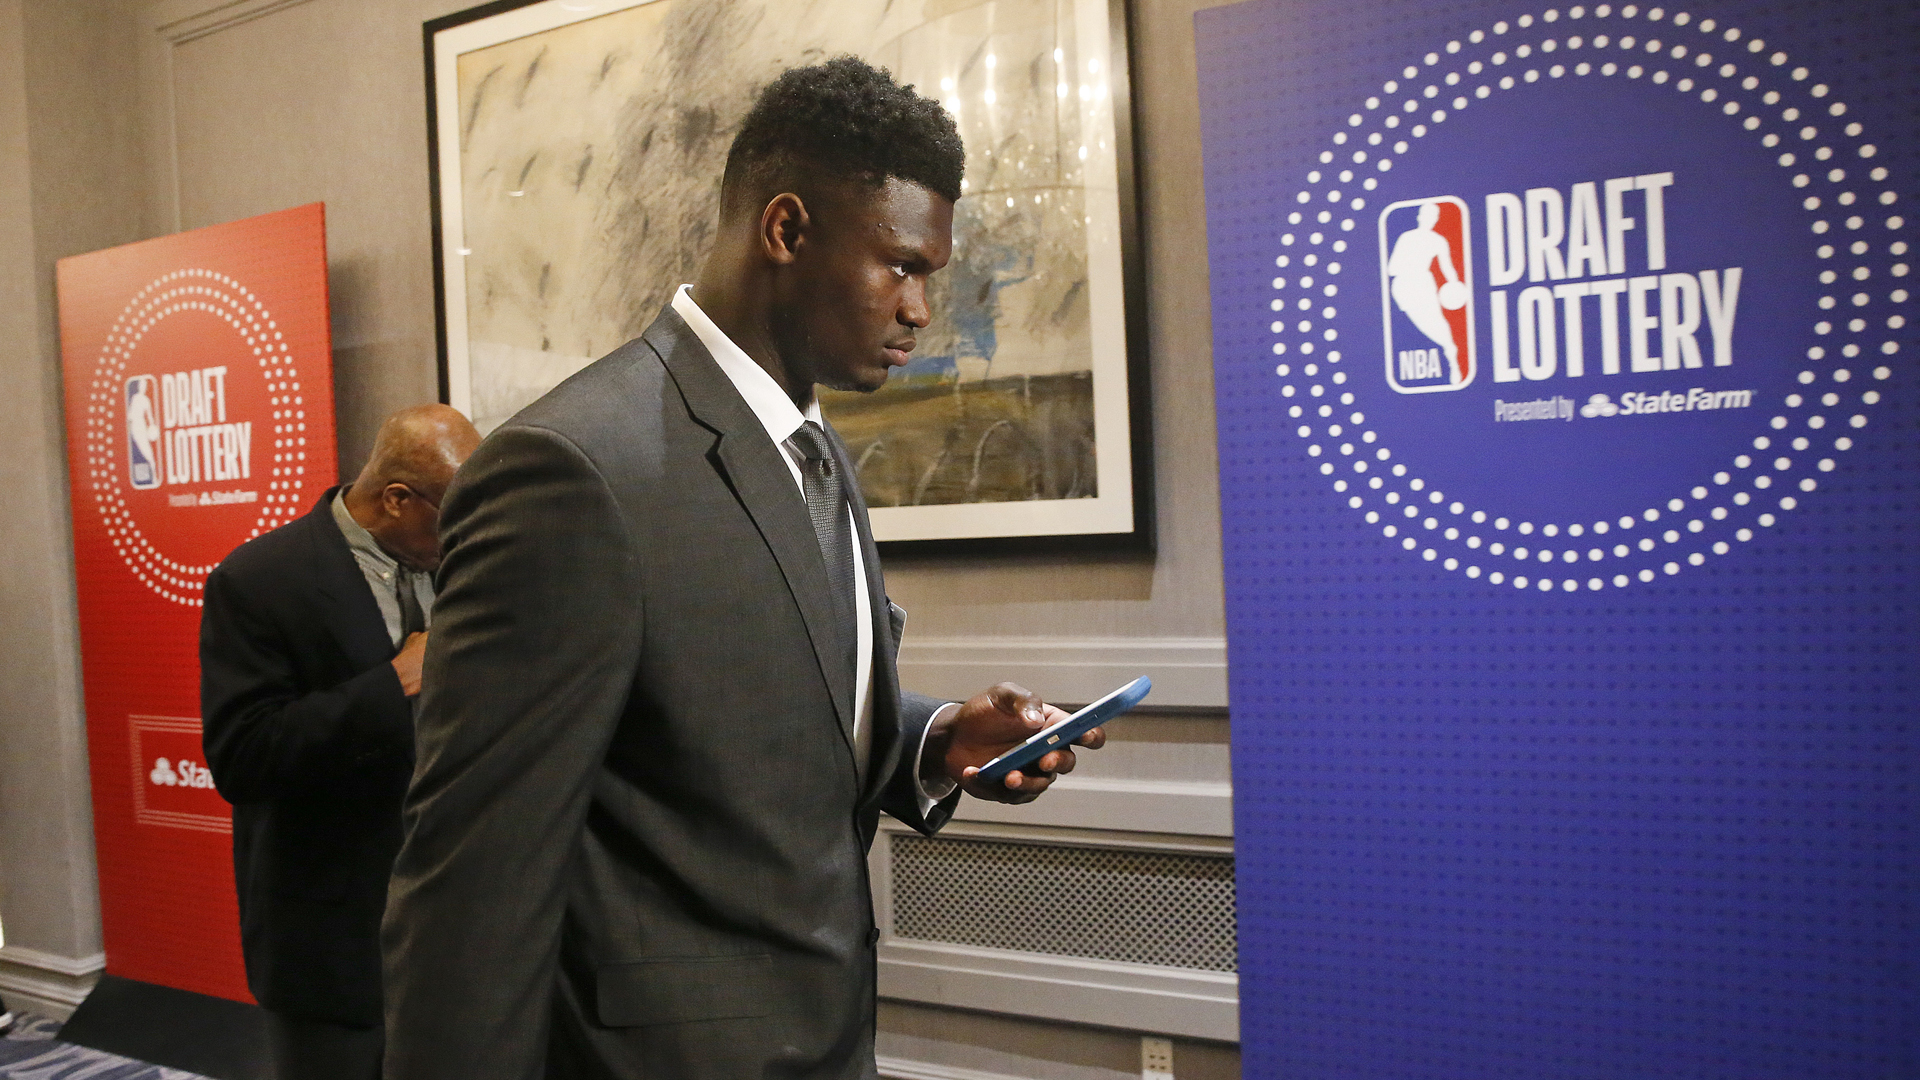 NBA Draft Lottery Zion Williamson 051419 AP_1557883820932